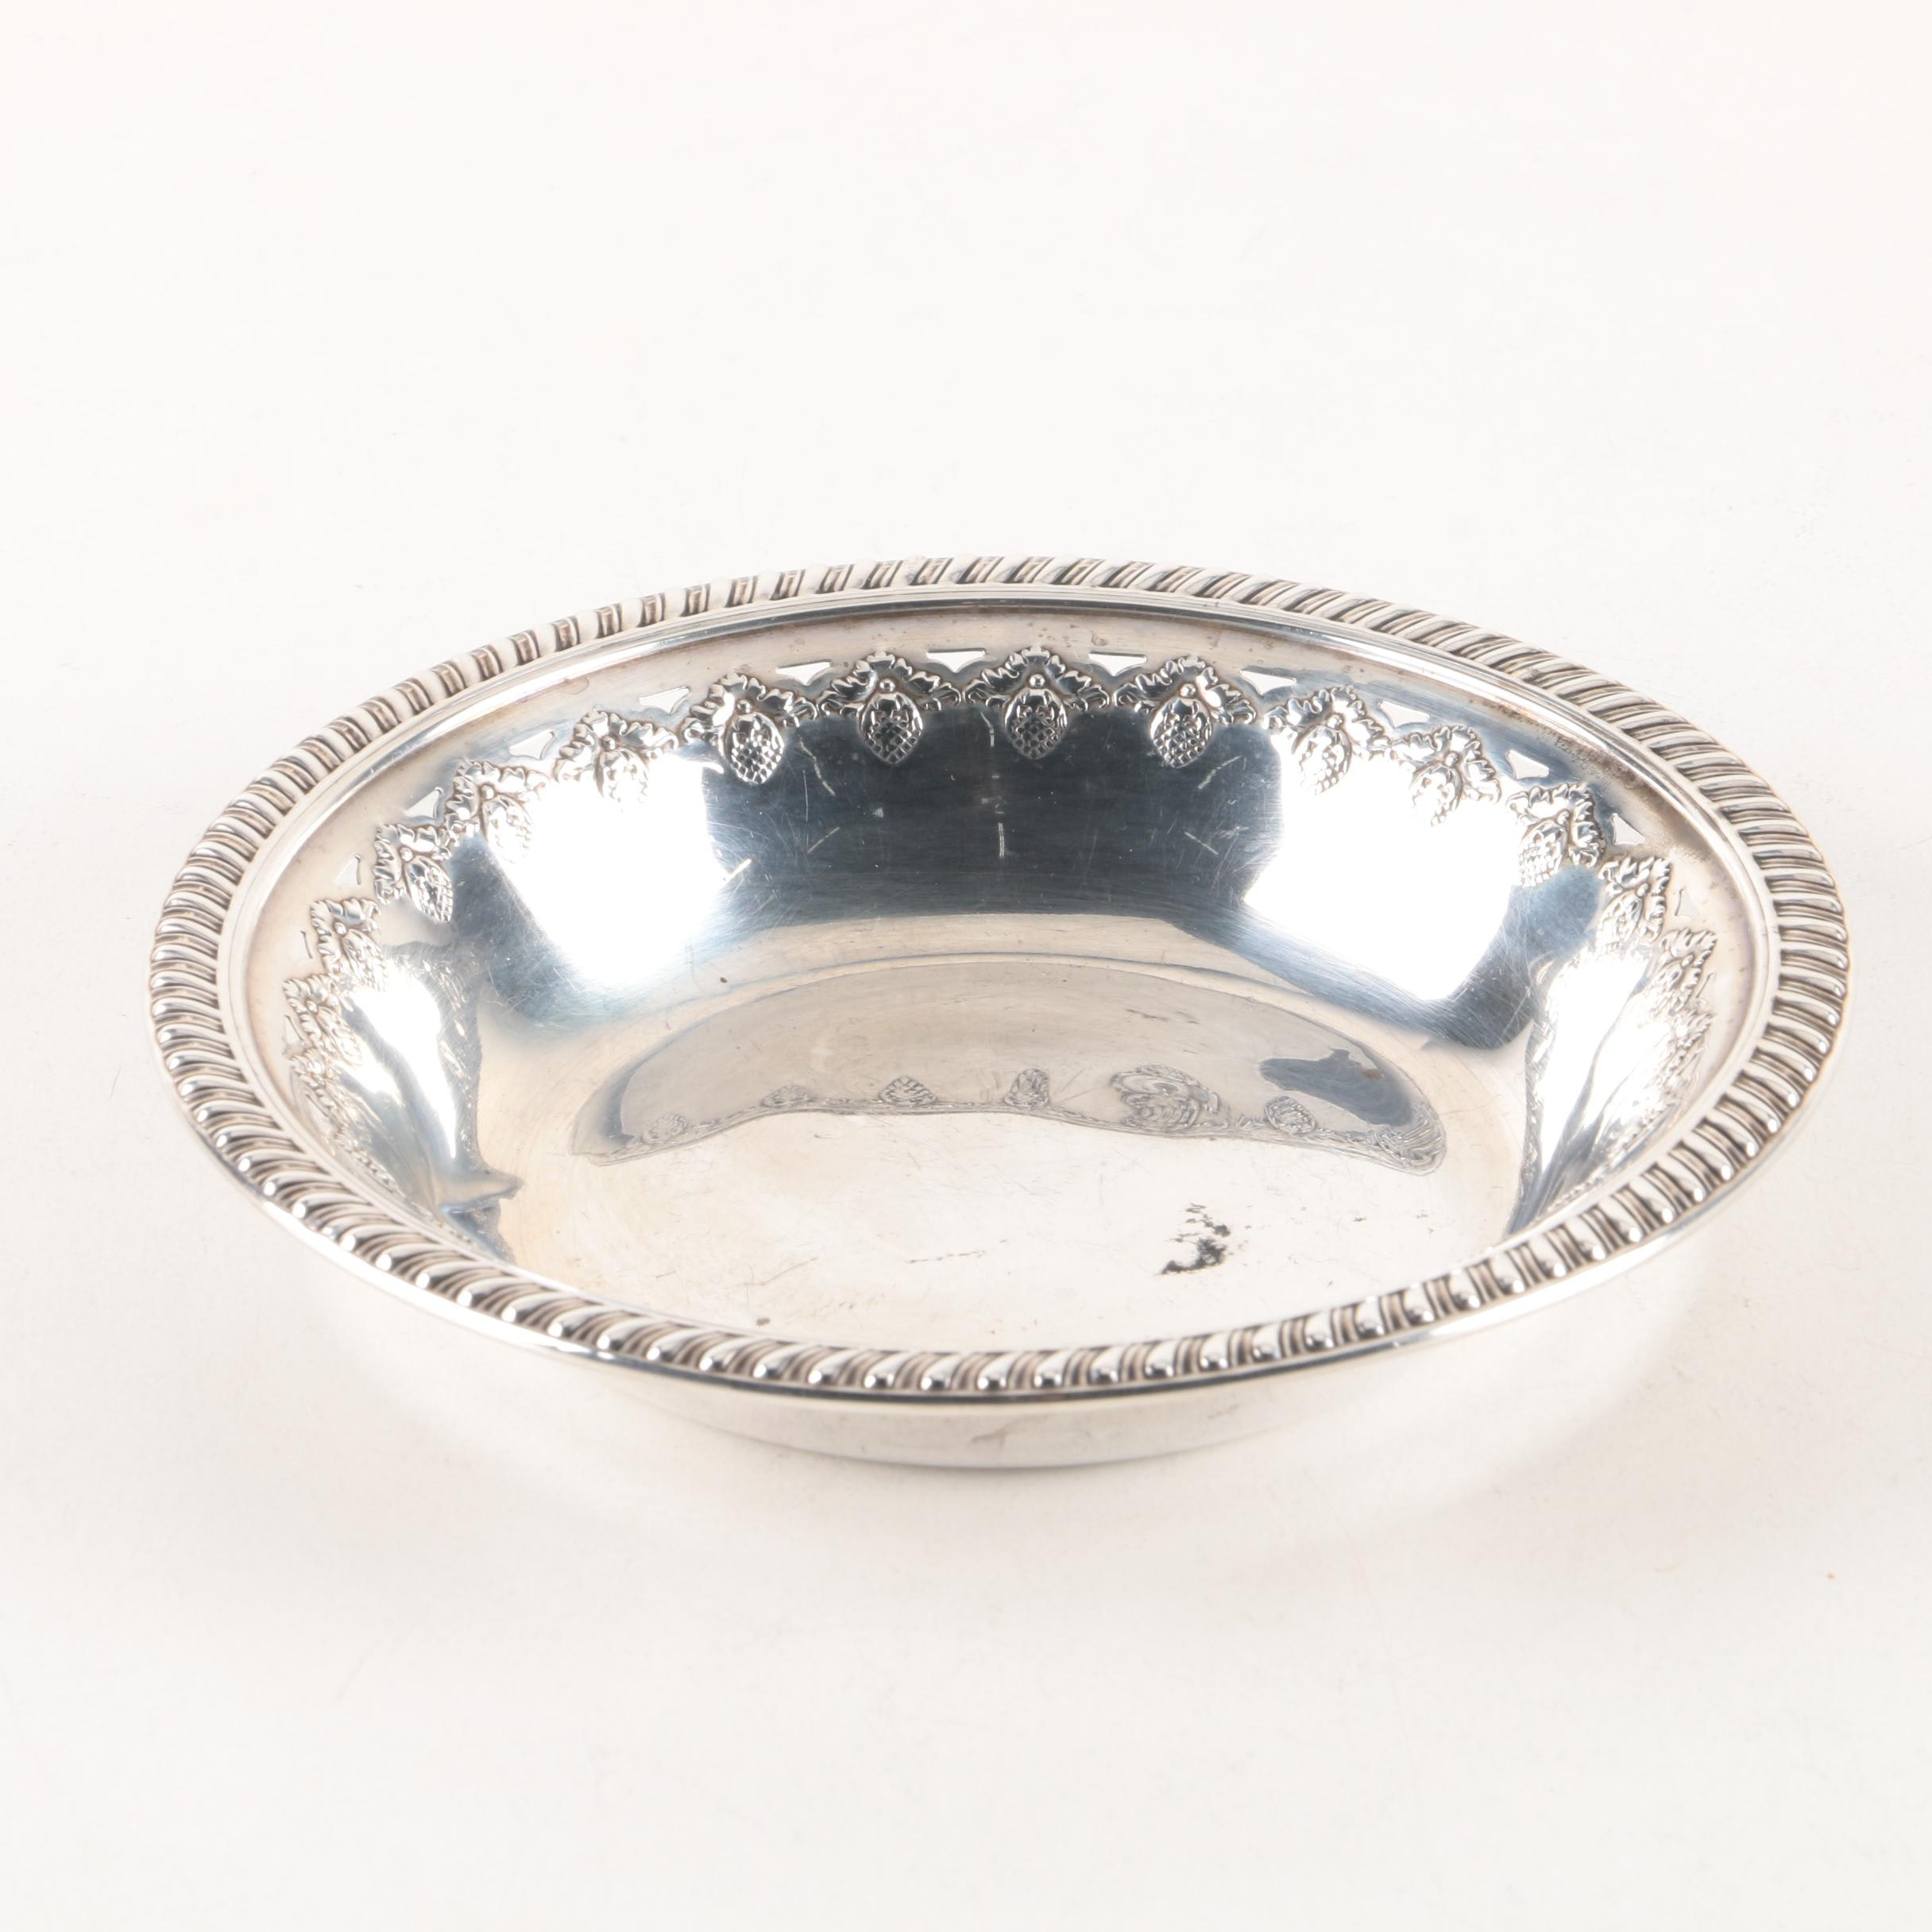 Reed & Barton Acorn Themed Sterling Silver Bowl